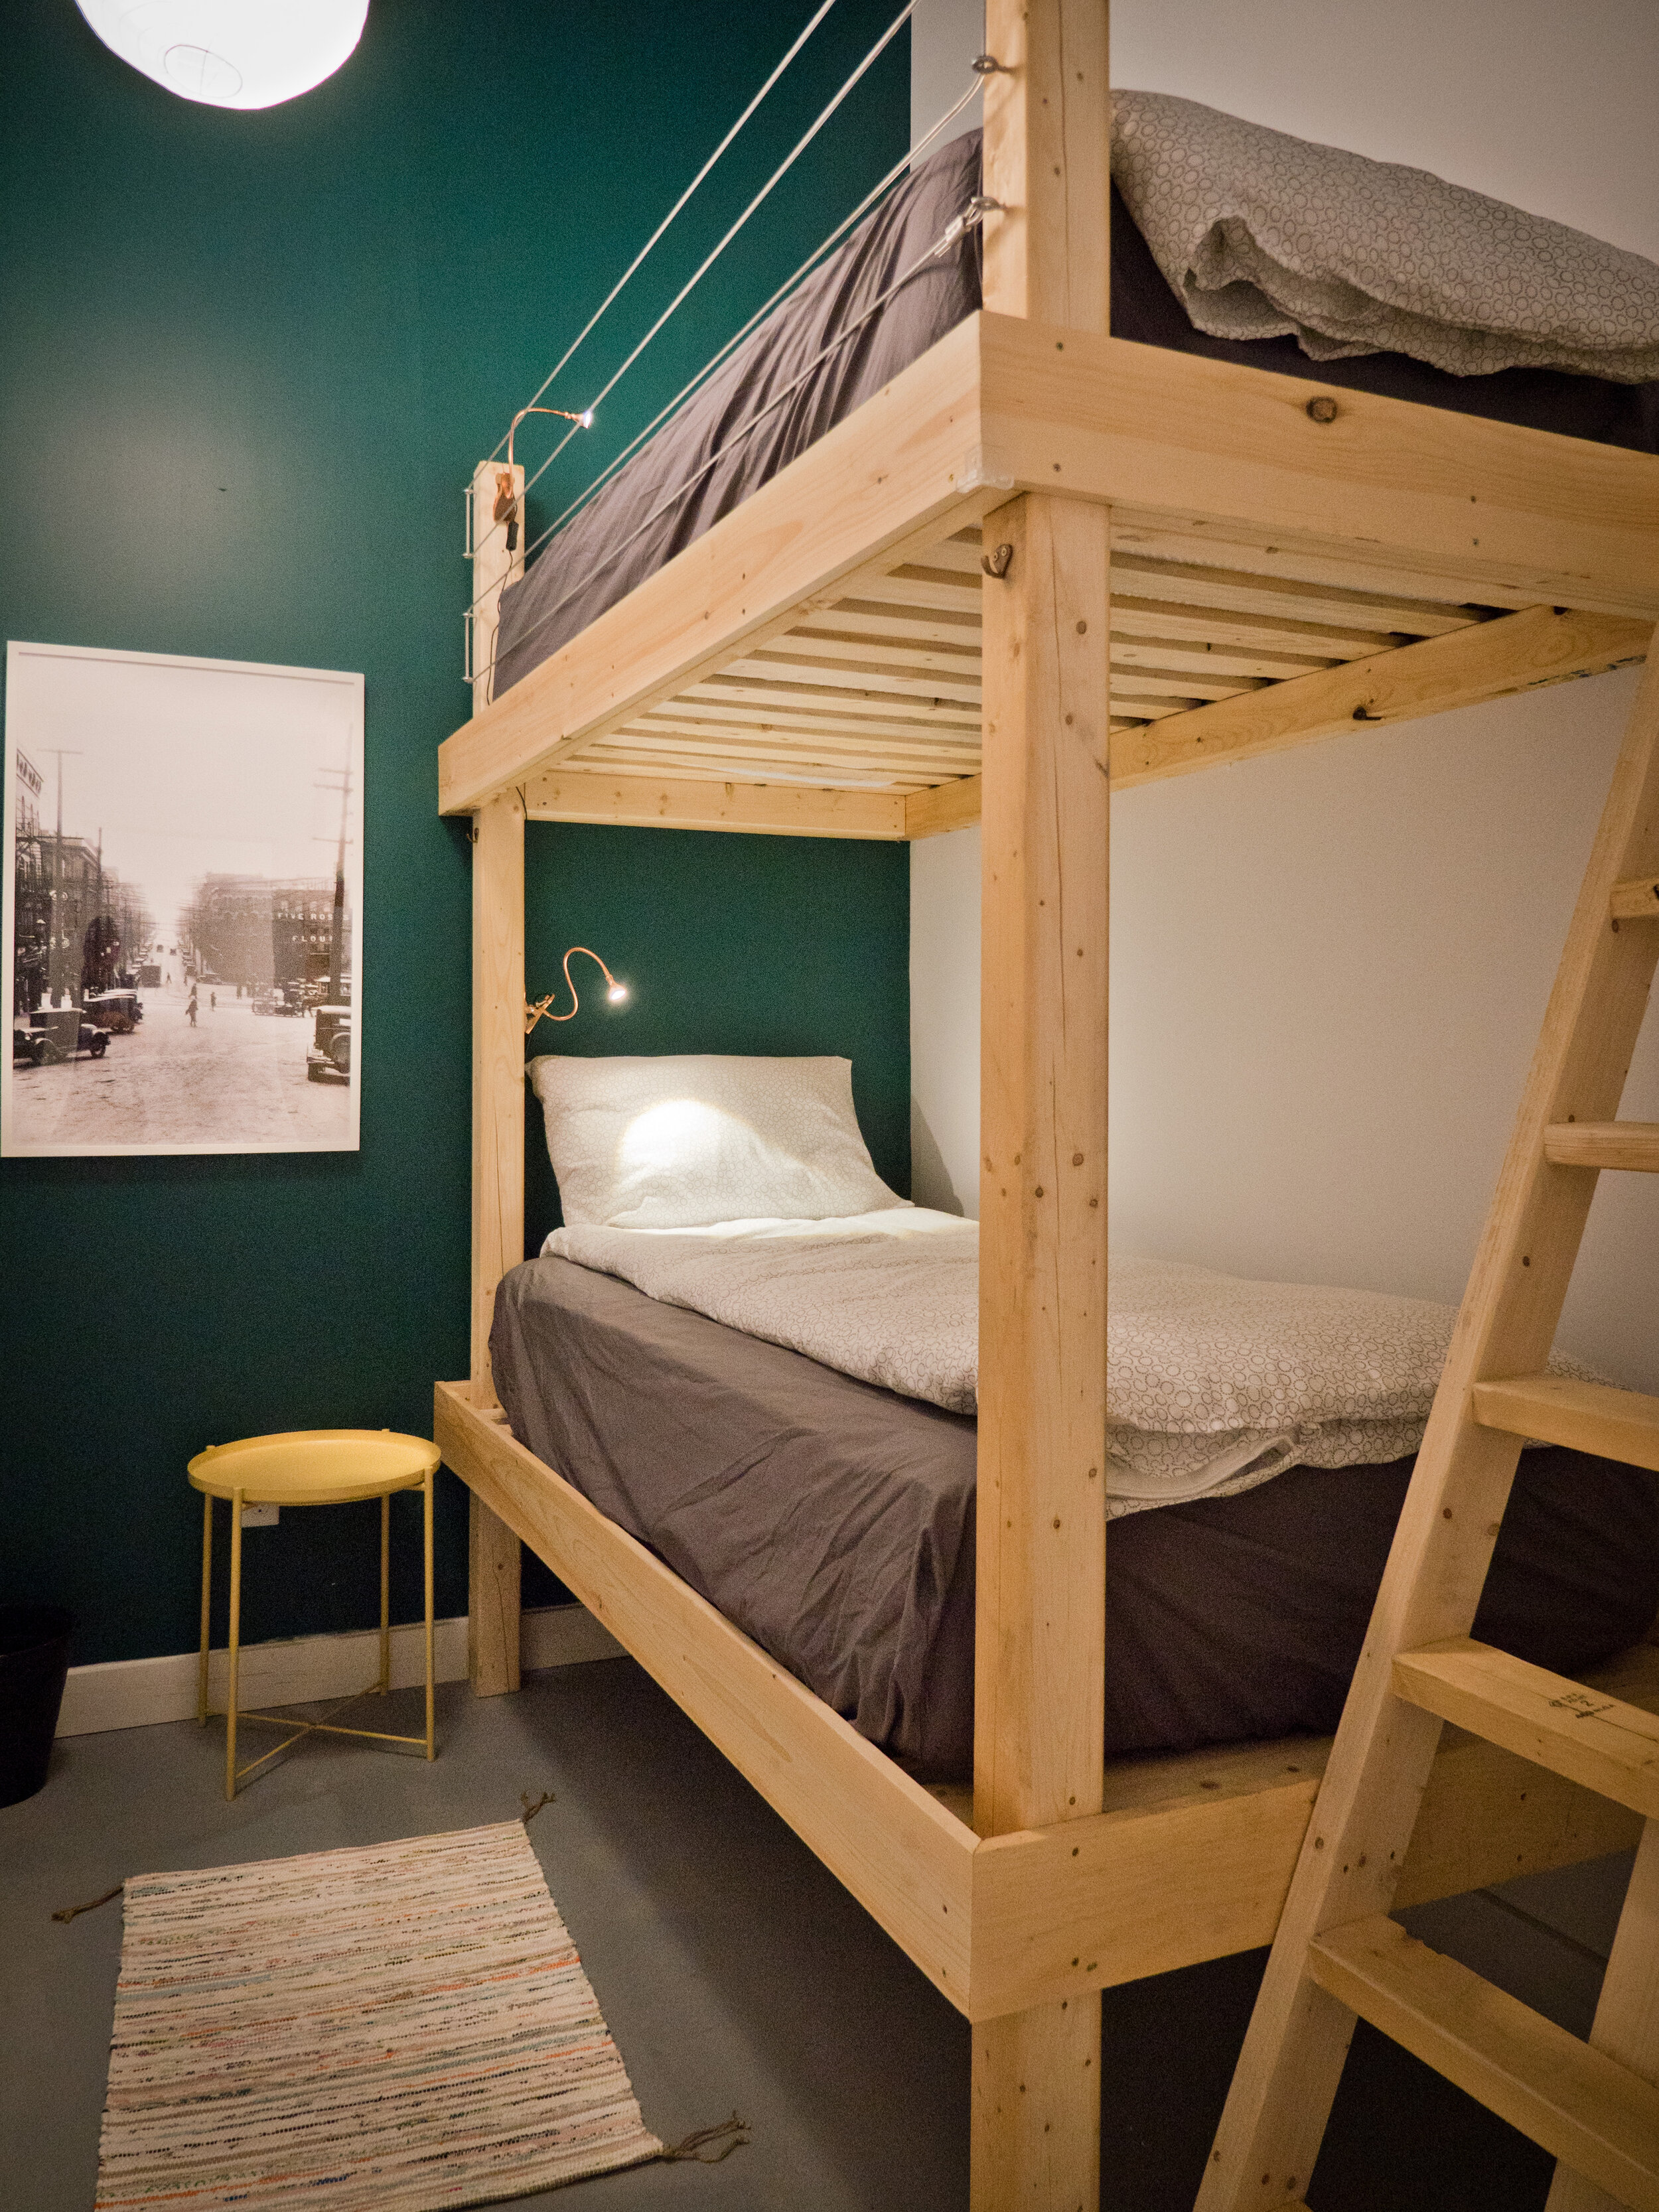 Private Bunk Room - Share with a friend or keep to yourself. Each private bunk room booking equates to a room all to yourself.Includes continental breakfast, morning coffee/tea, kitchen use, fresh linens/towels, and a good nights sleep. Please note that our clean bathrooms are shared.CLICK HERE for rates & availability.